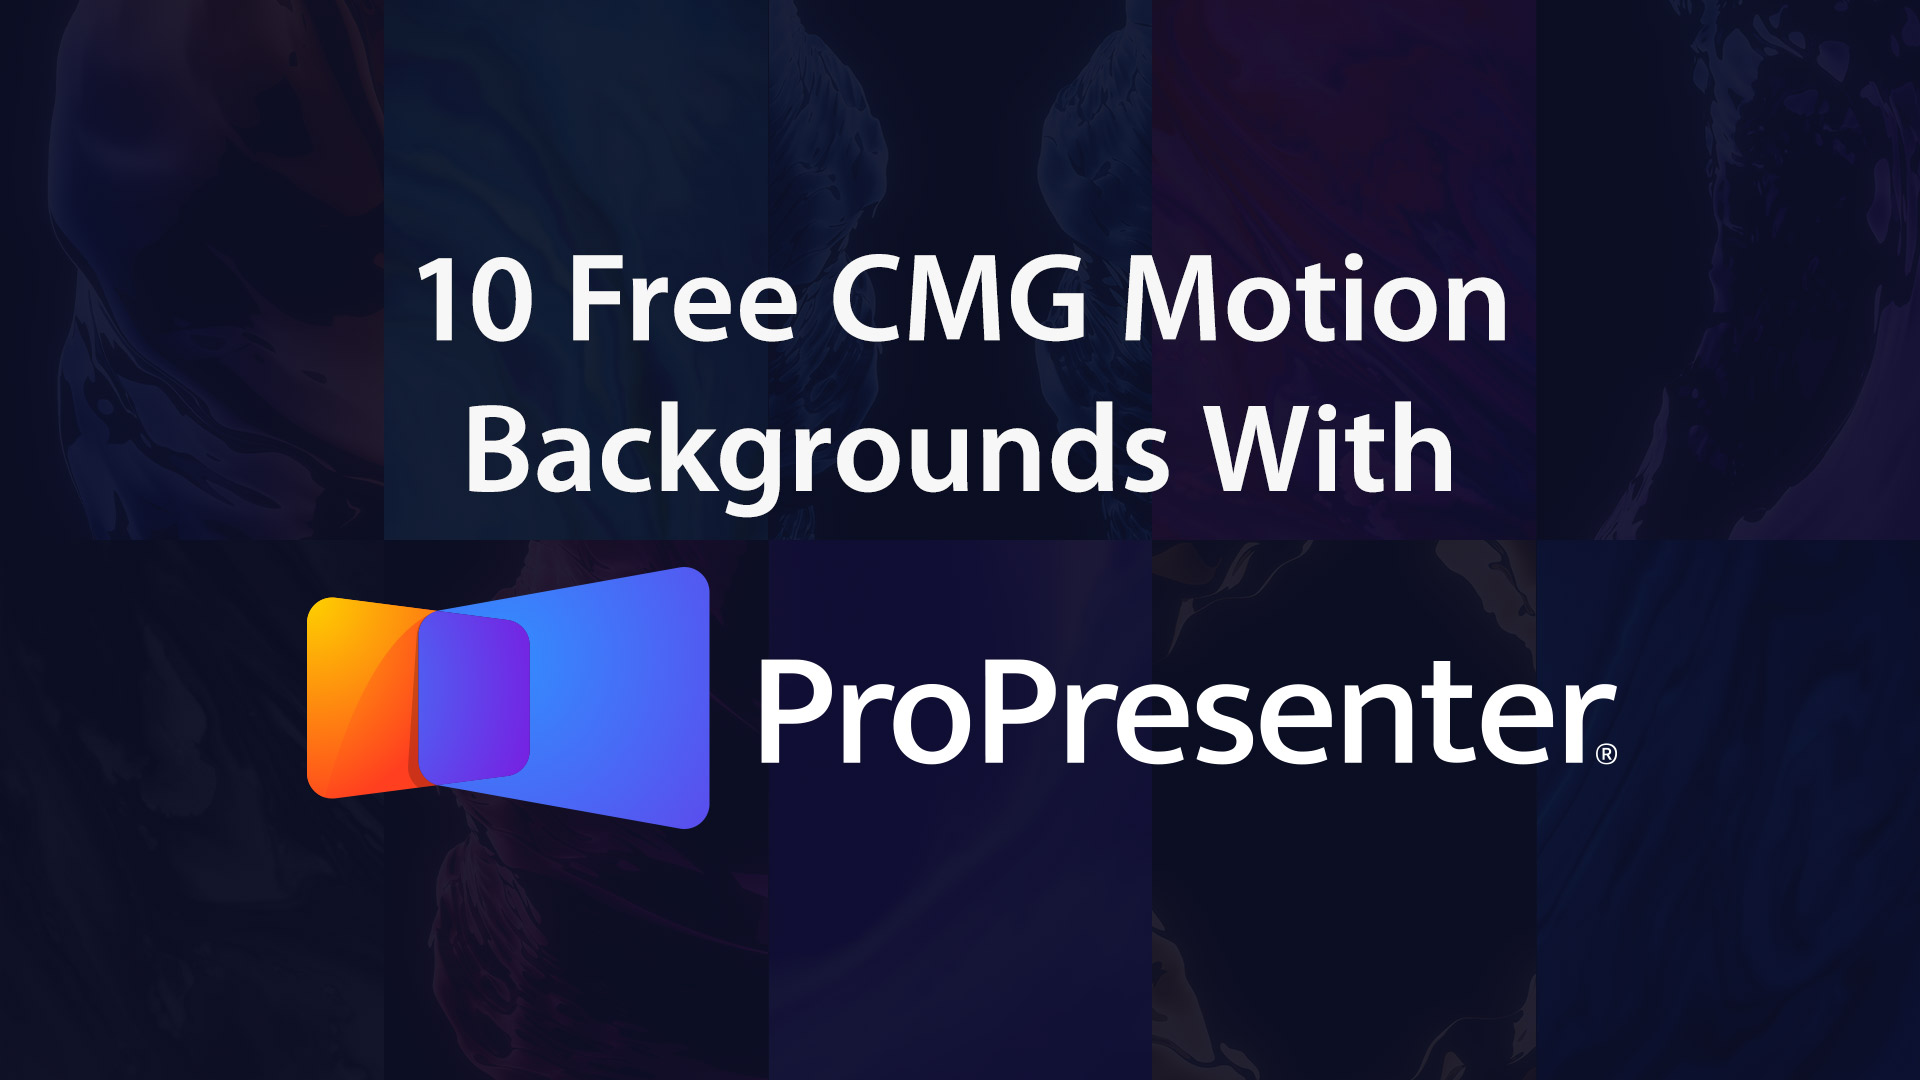 How To Download 10 Free CMG Motion Backgrounds With ProPresenter 7